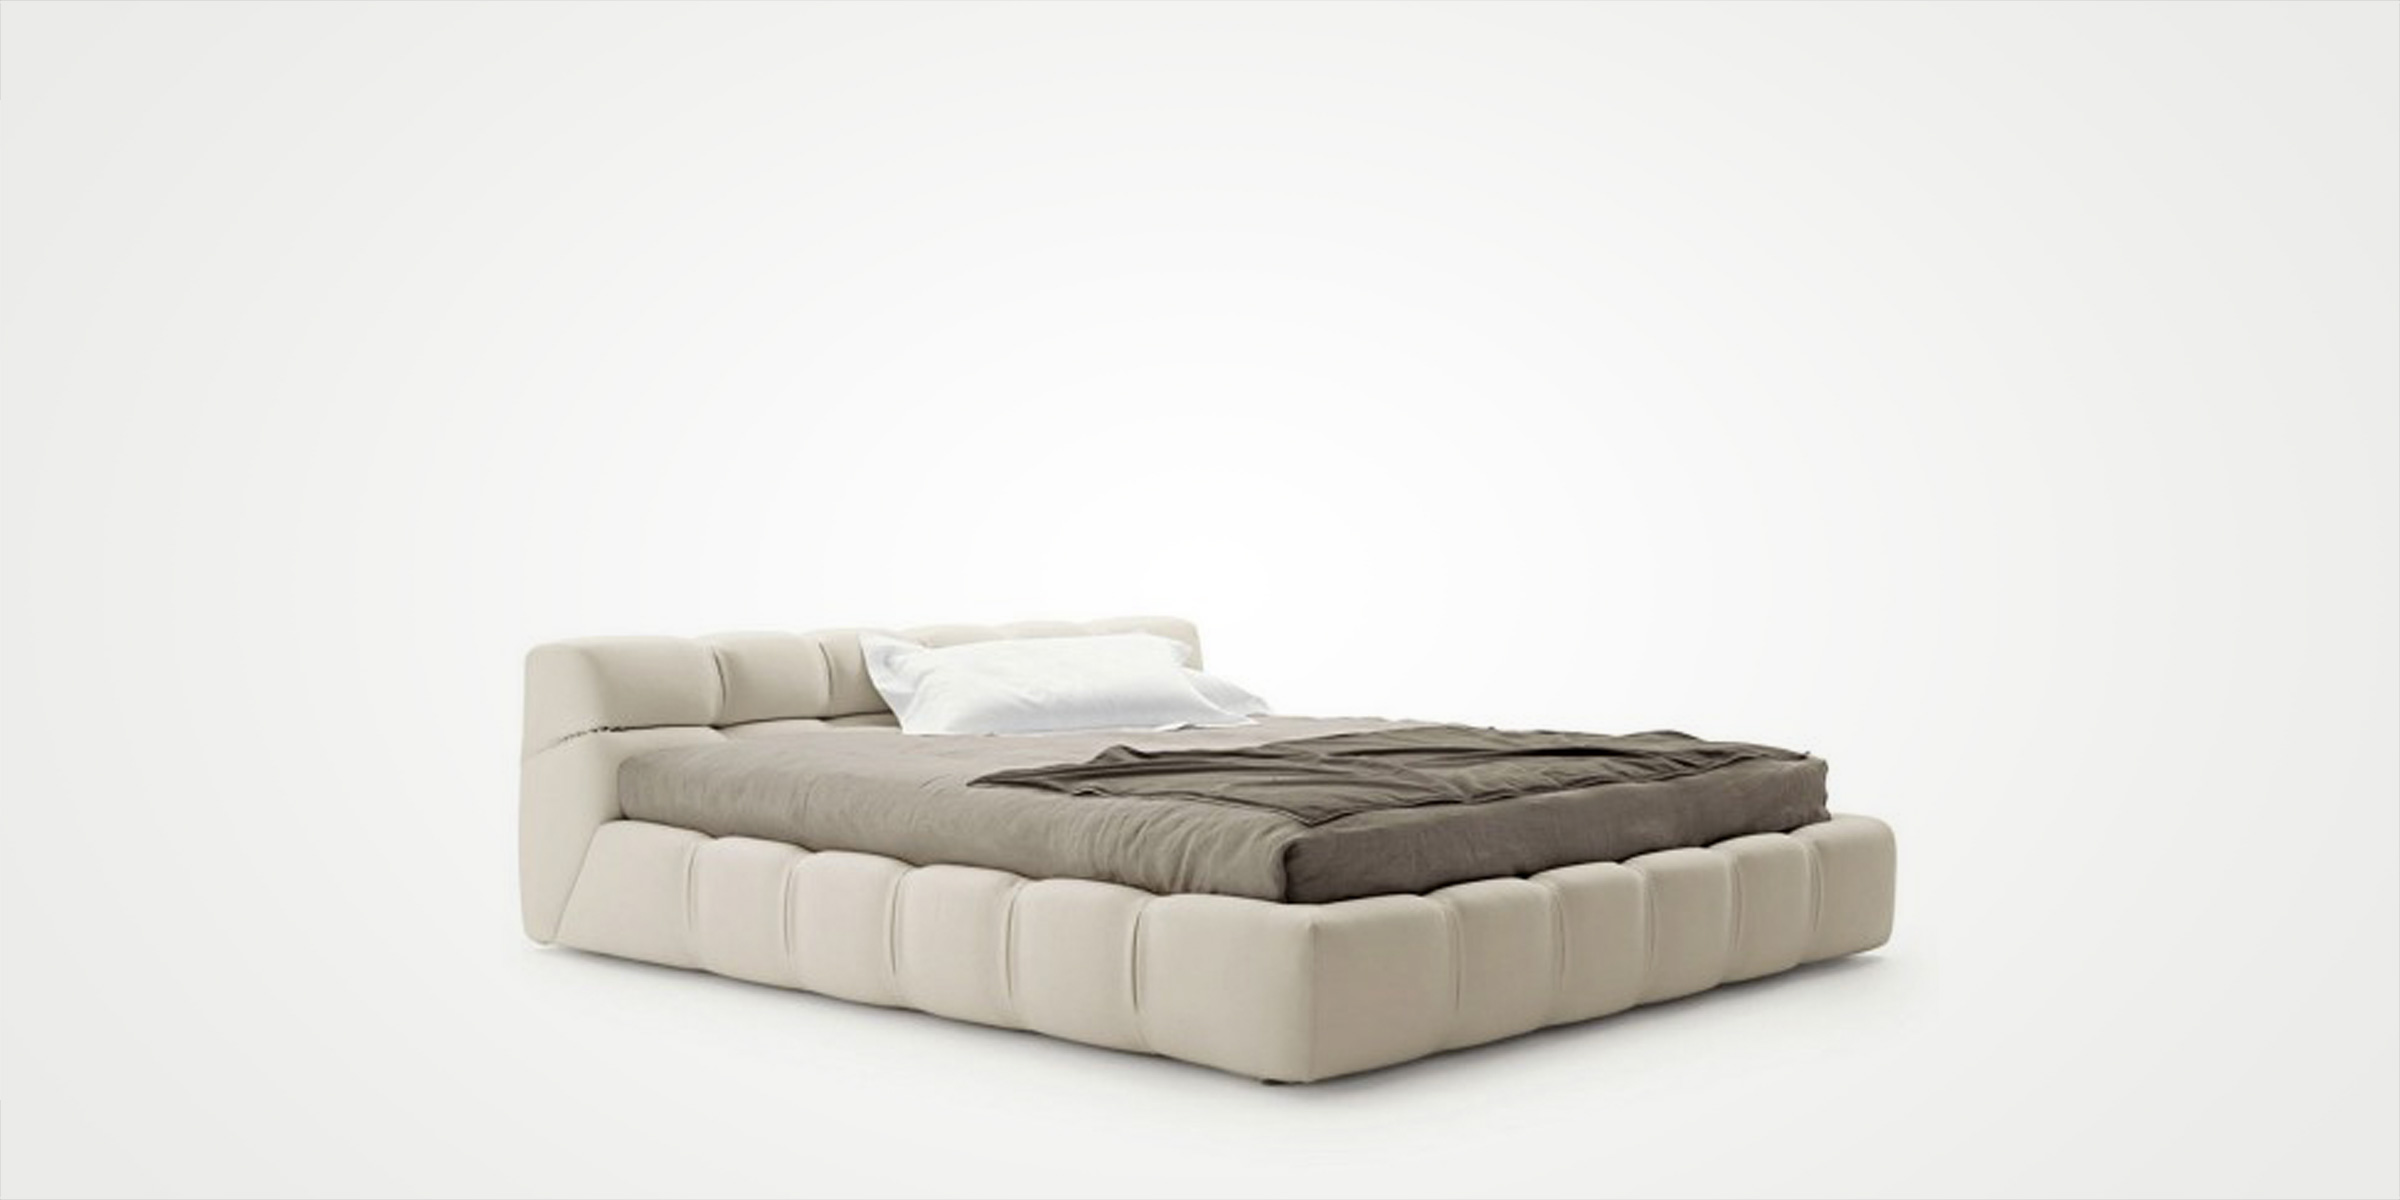 Designer Beds Melbourne Italian Beds Night Complements Living Interiors